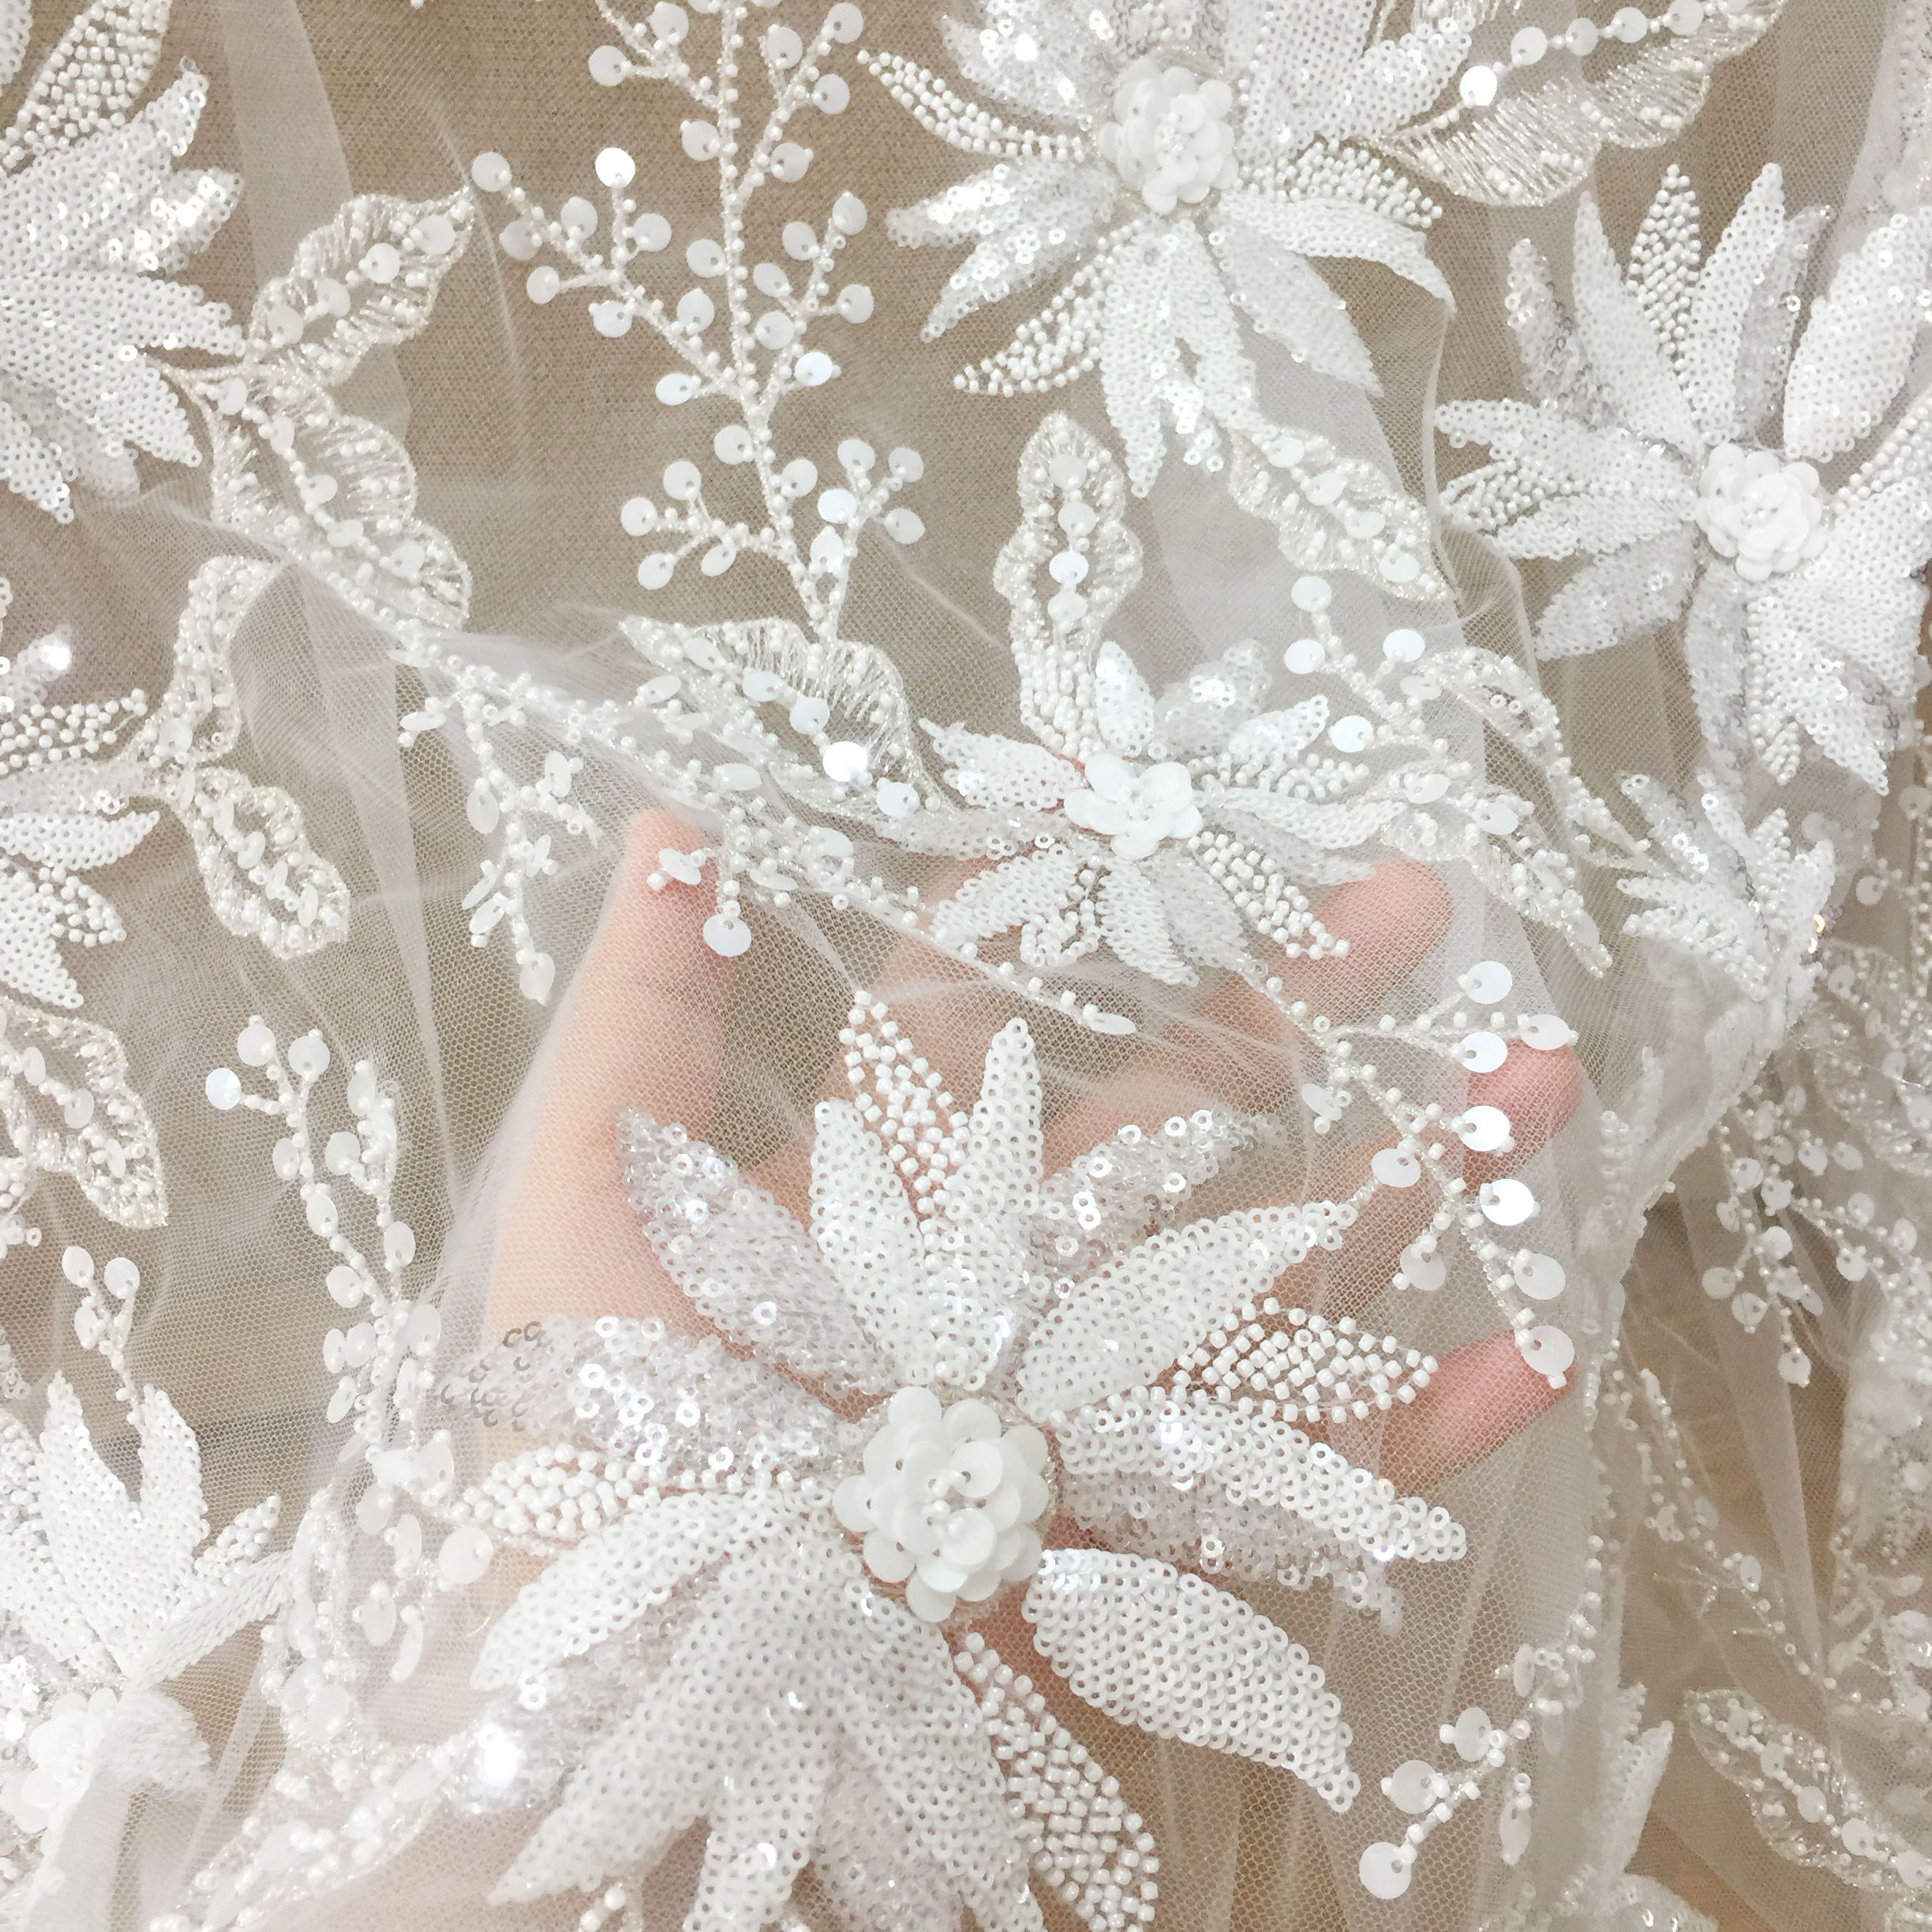 3D Feather Sequins Lace Fabric New Design Embroidered Tulle Luxurious French Lace Fabric Bridal Lace For Party Wedding Dresses 5 Yards